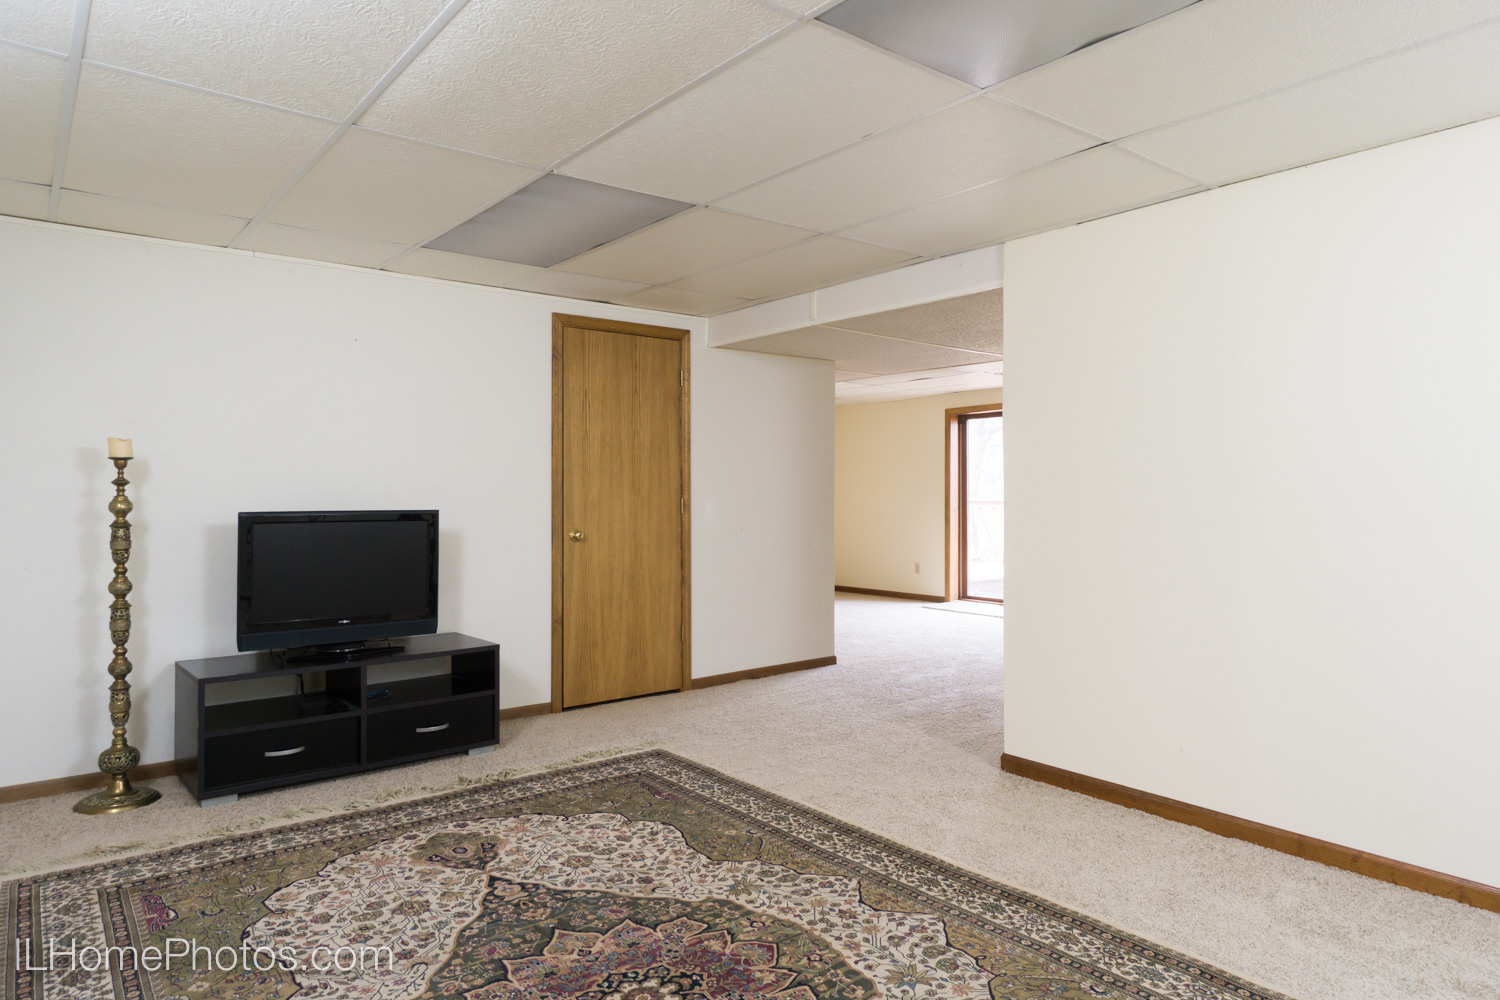 Interior basement photograph for real estate in Dunlap, IL :: Illinois Home Photography by Michael Gowin, Lincoln, IL